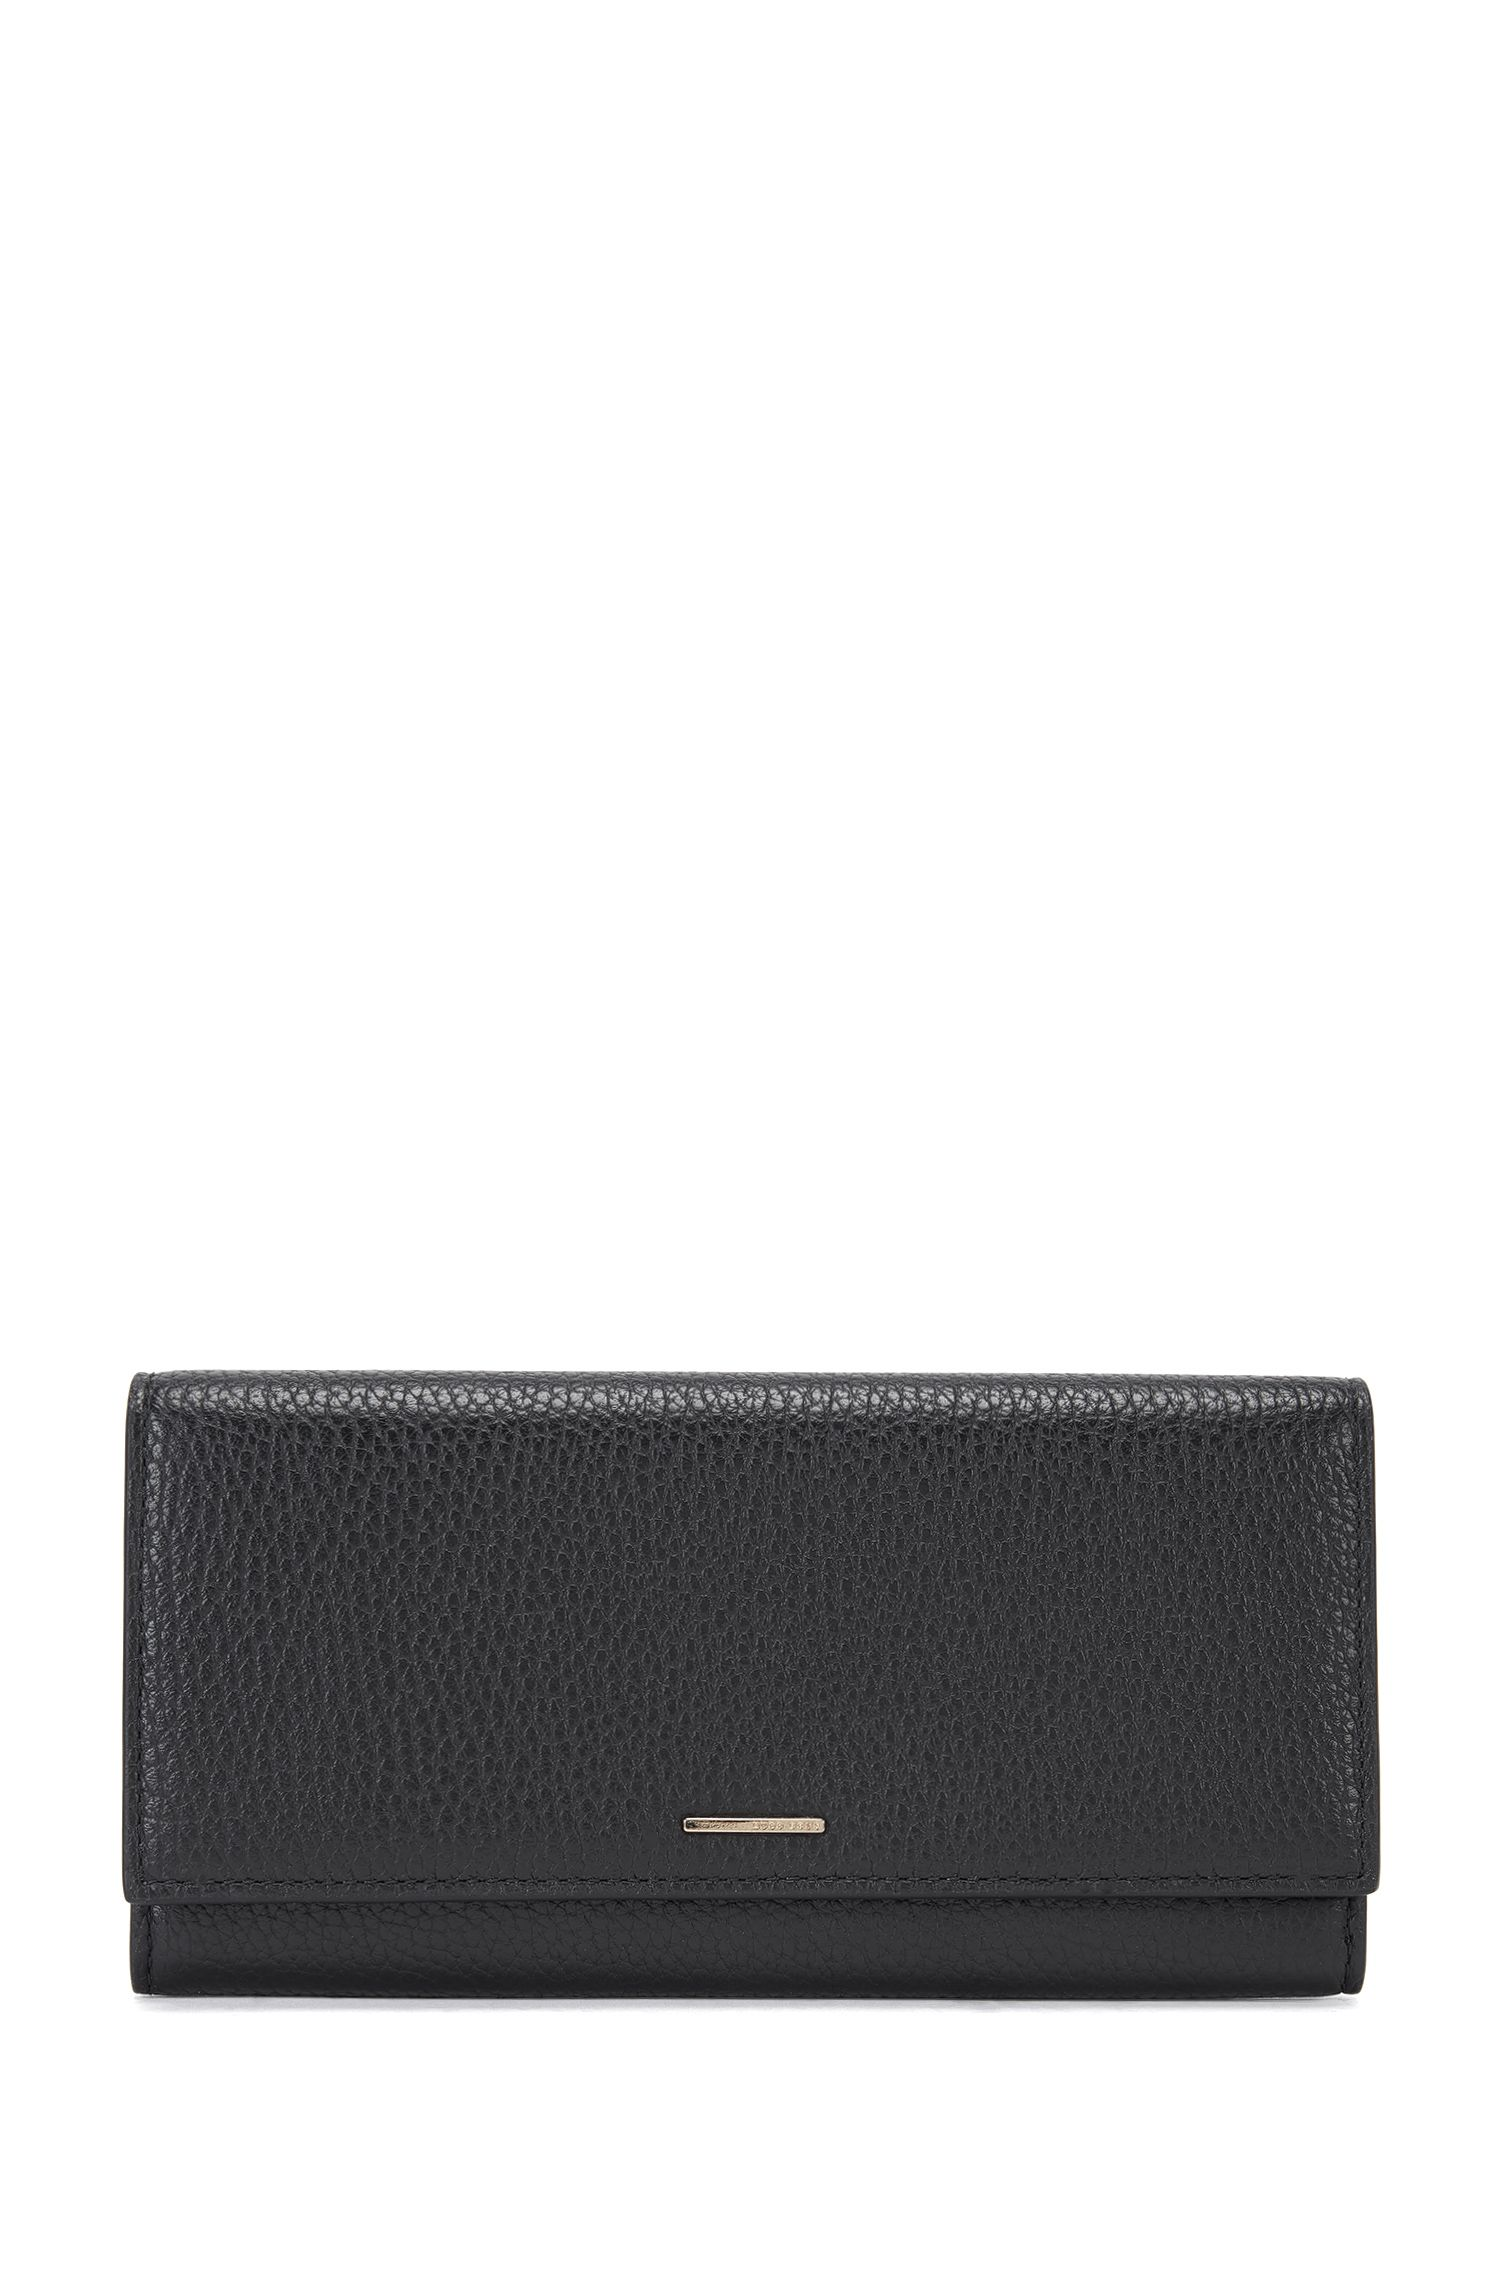 Leather Zip Wallet | Staple Continental A